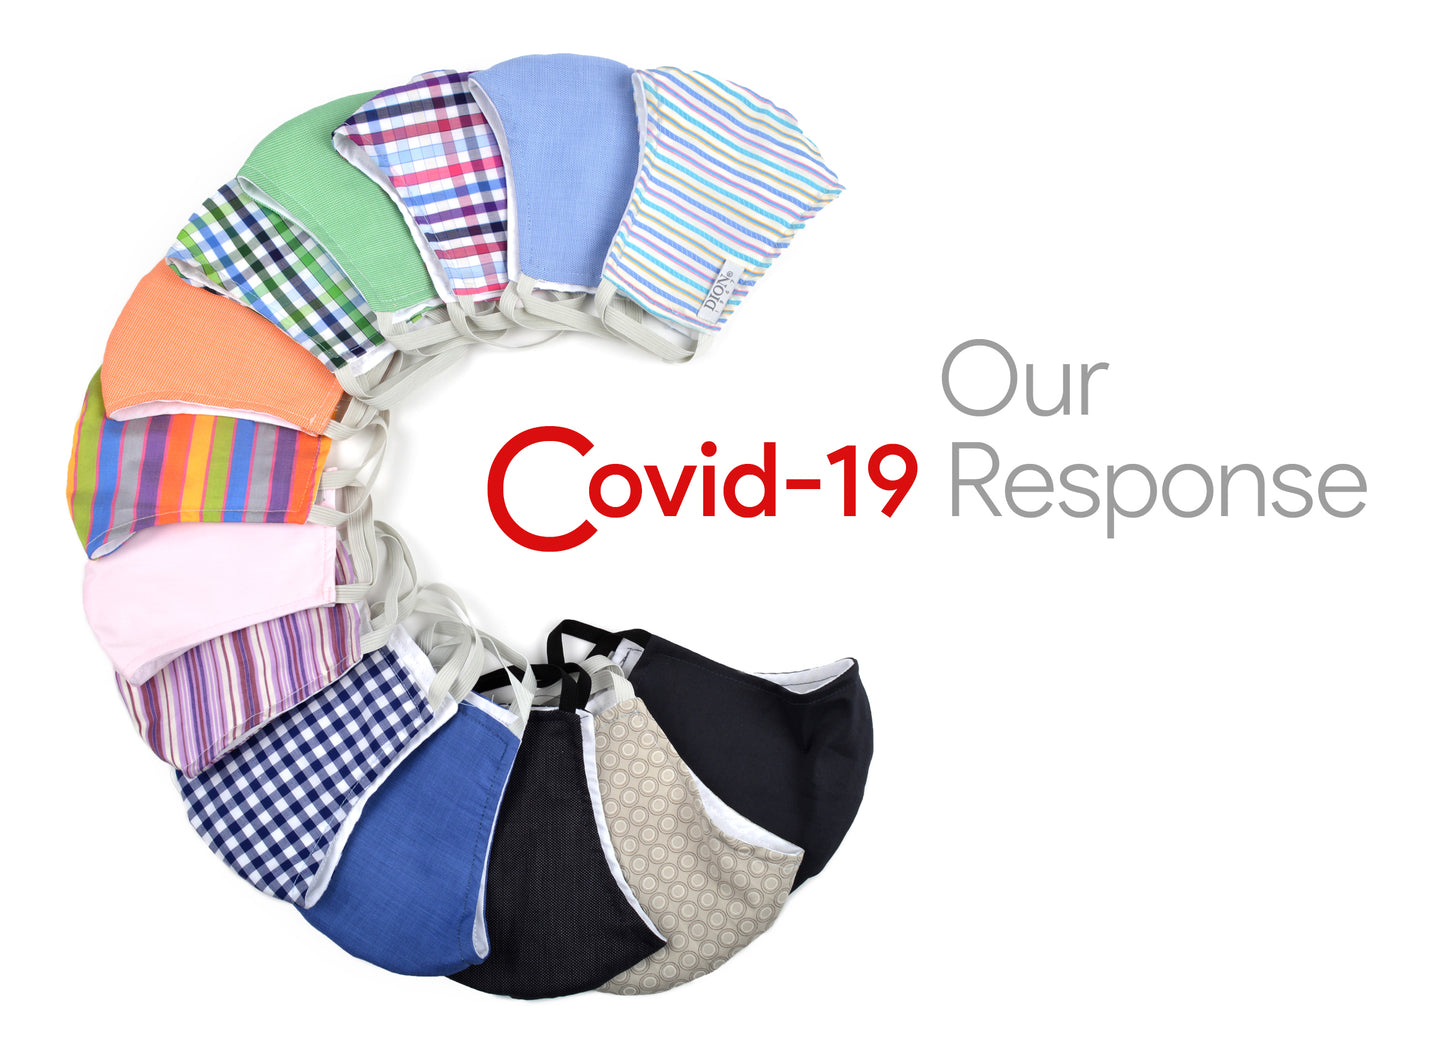 Covid-19 Reusable Non-Medical Masks